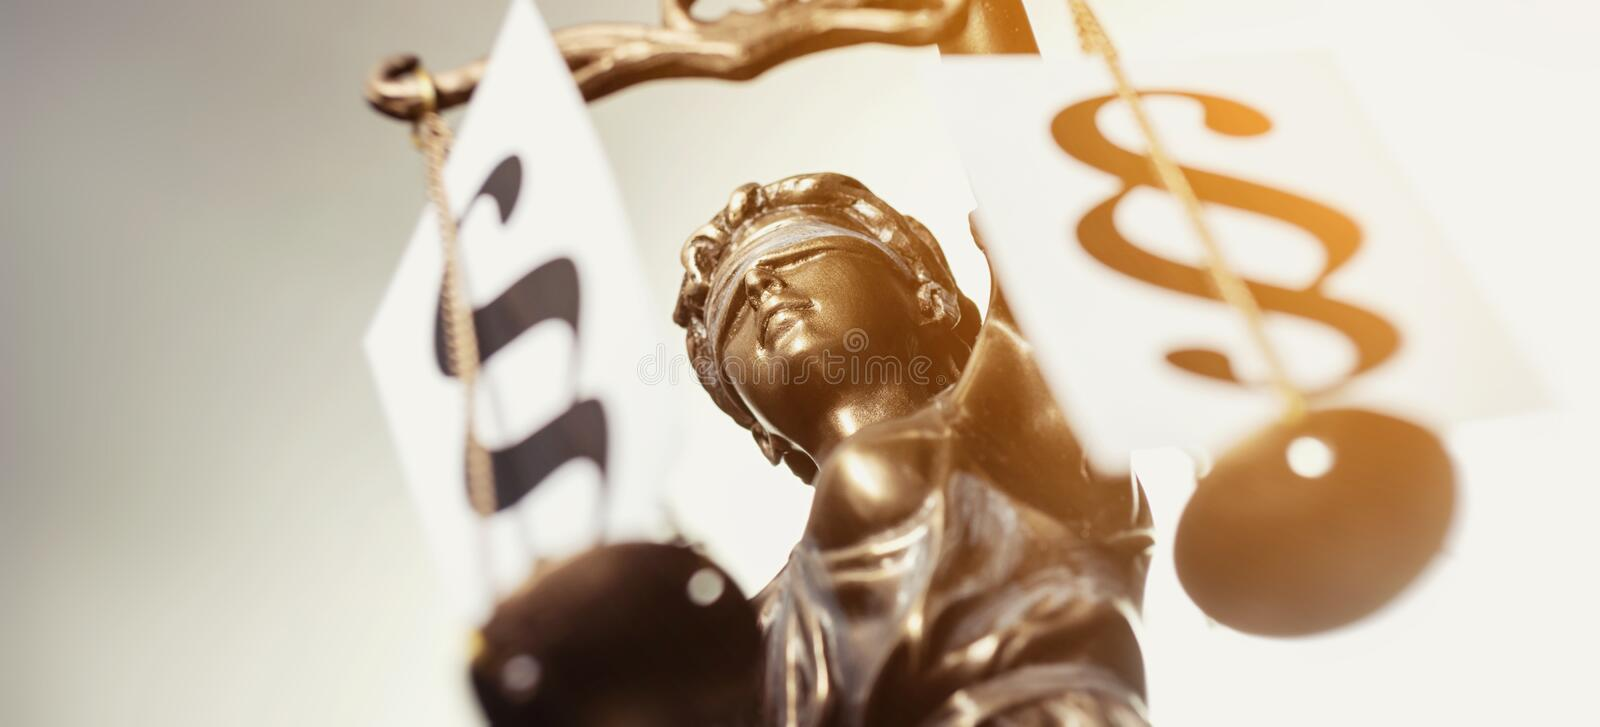 The Statue of Justice. Justitia the lady of Justice with paragraph signs on scales view from above with shine effect. ideal for websites and magazines layouts stock photo